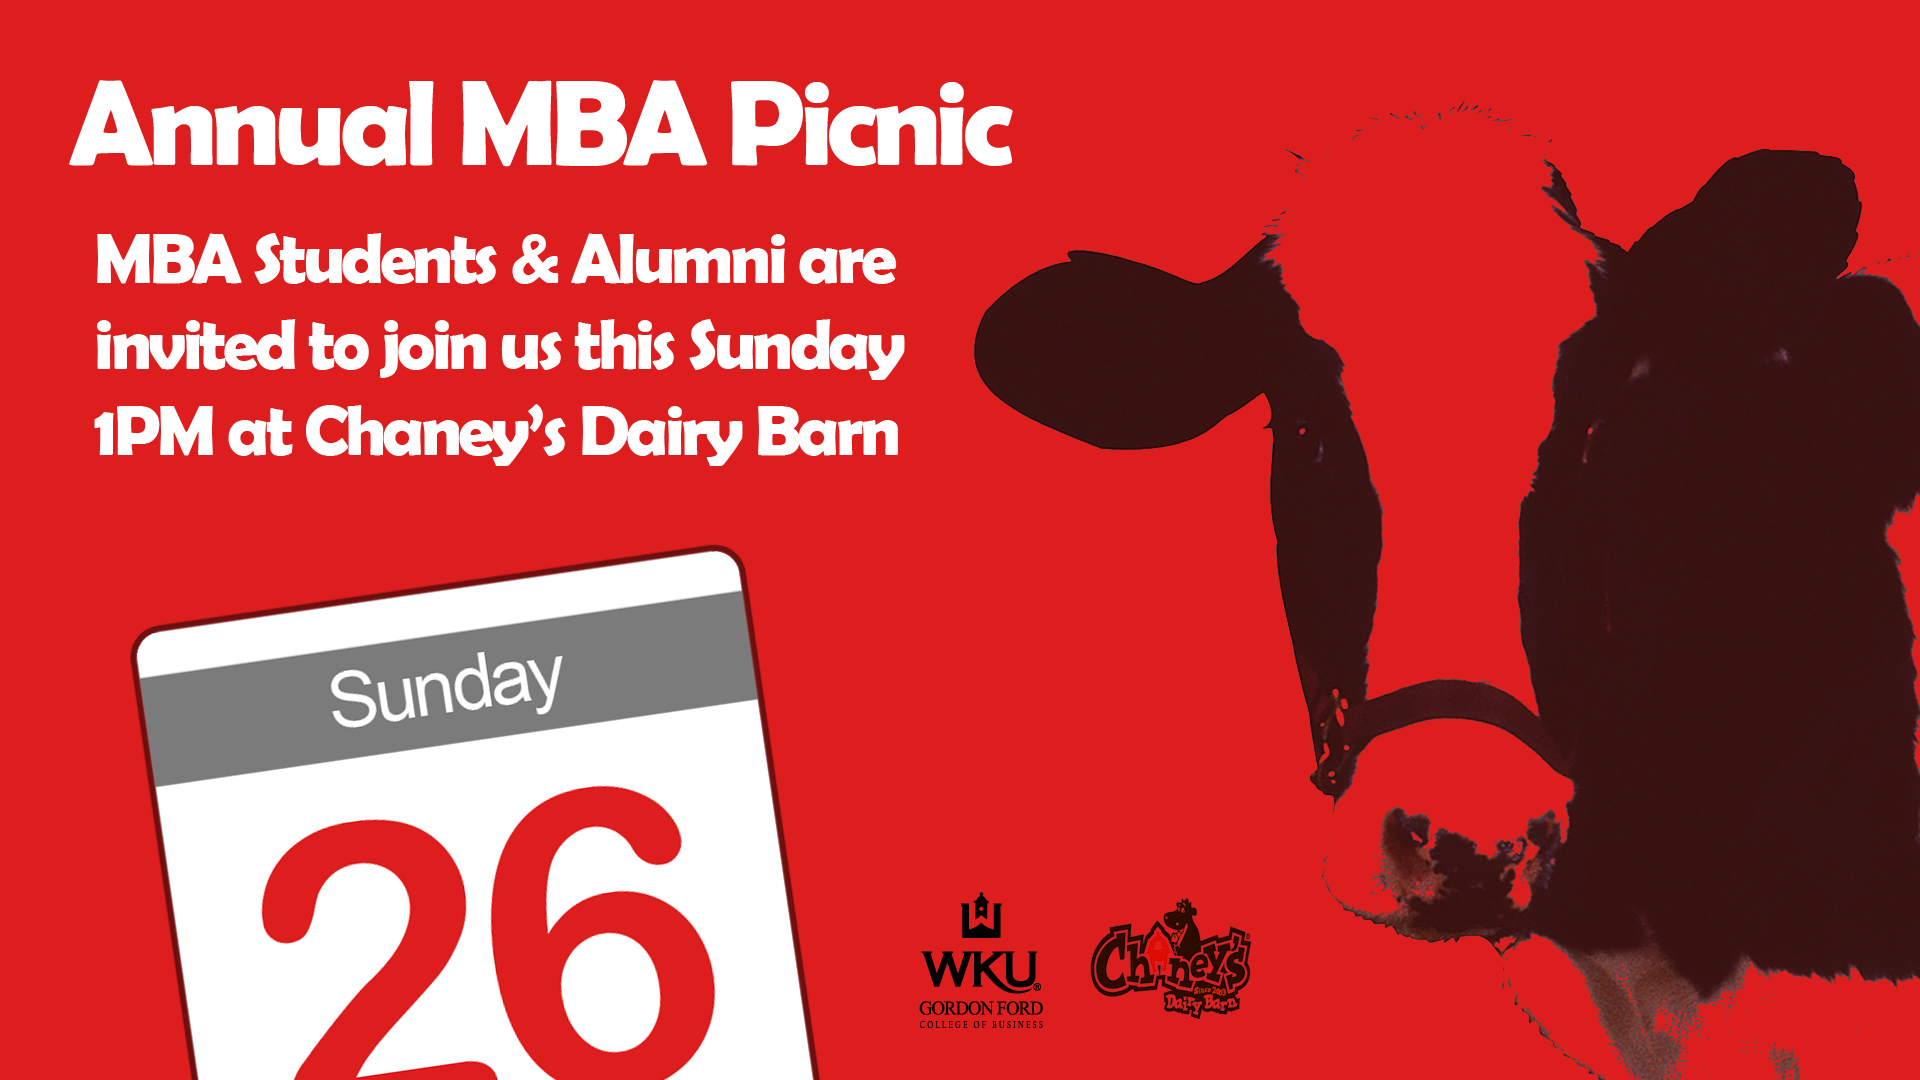 Annual MBA Picnic